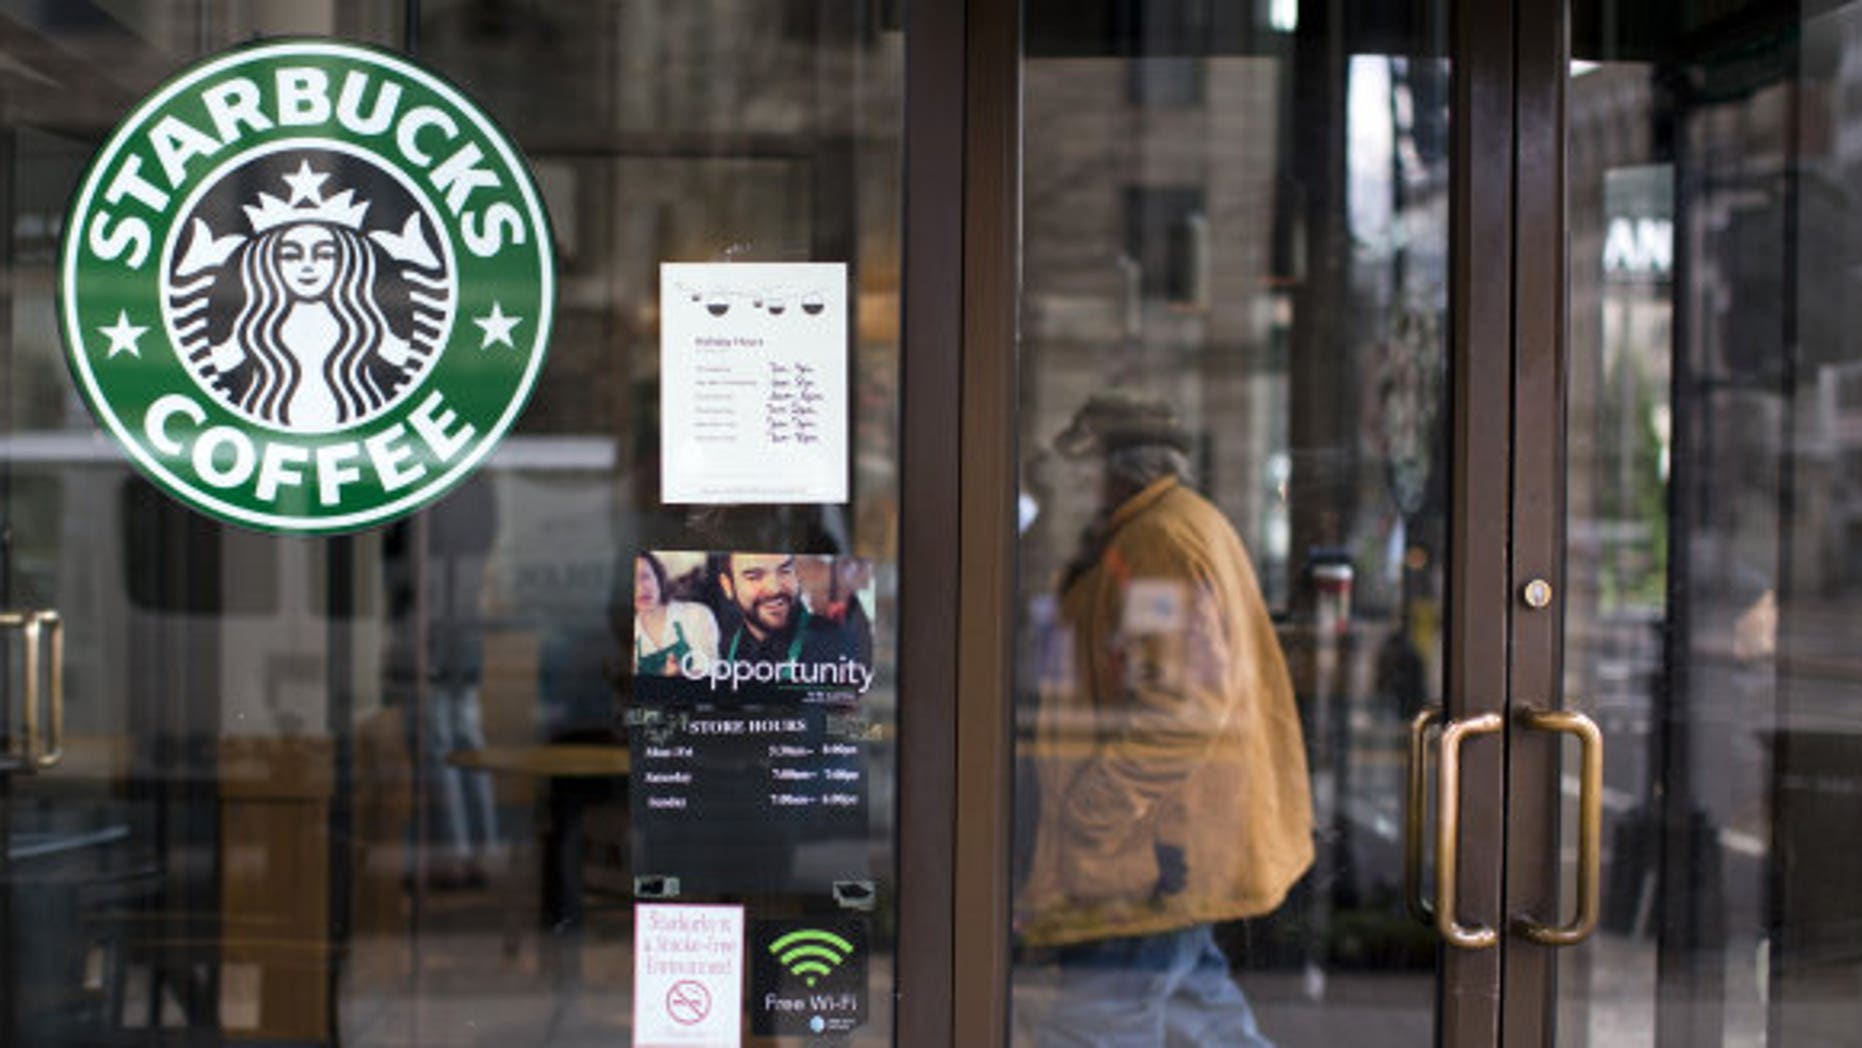 A five year old boy uncovered a hidden cell phone camera in a woman's restroom at Starbucks.